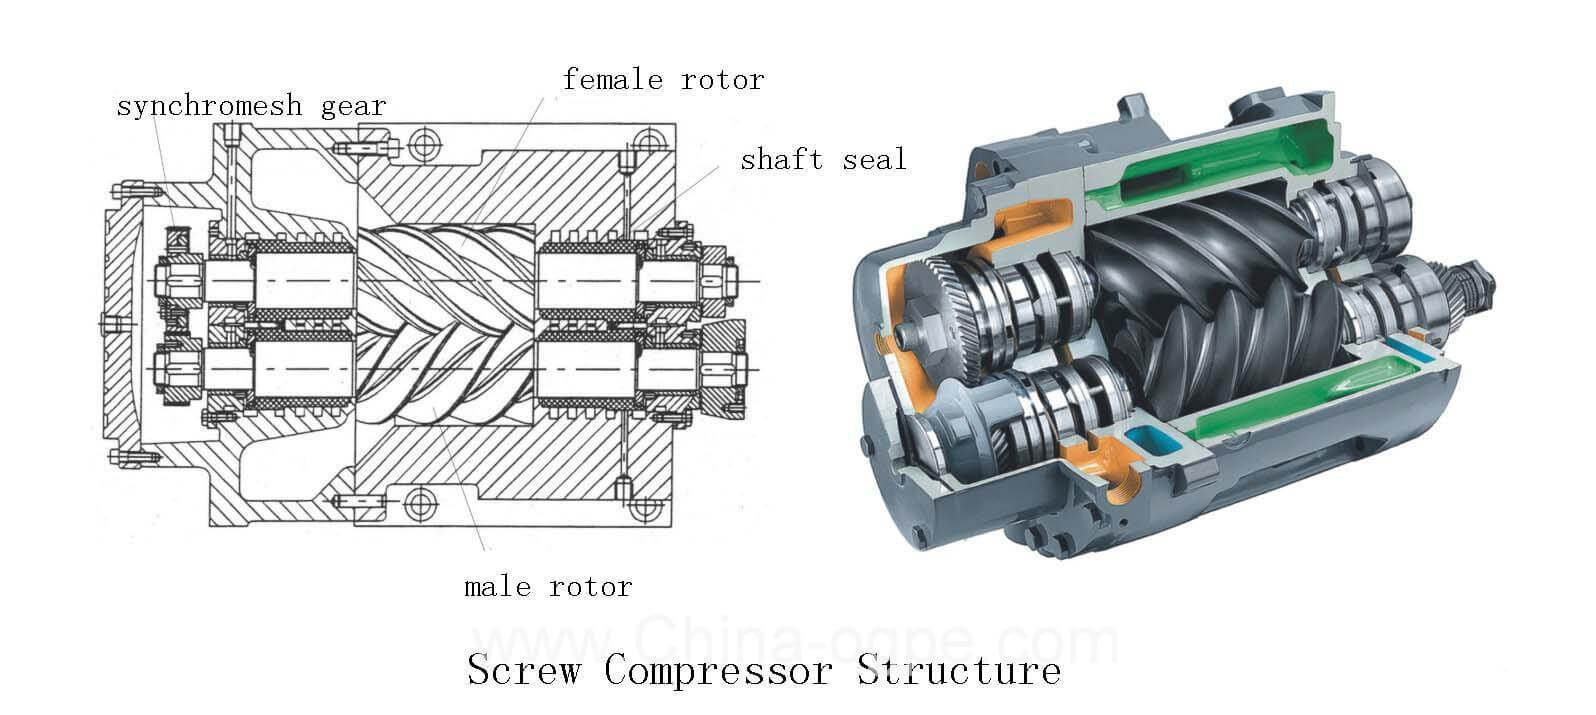 Screw Compressor Structure